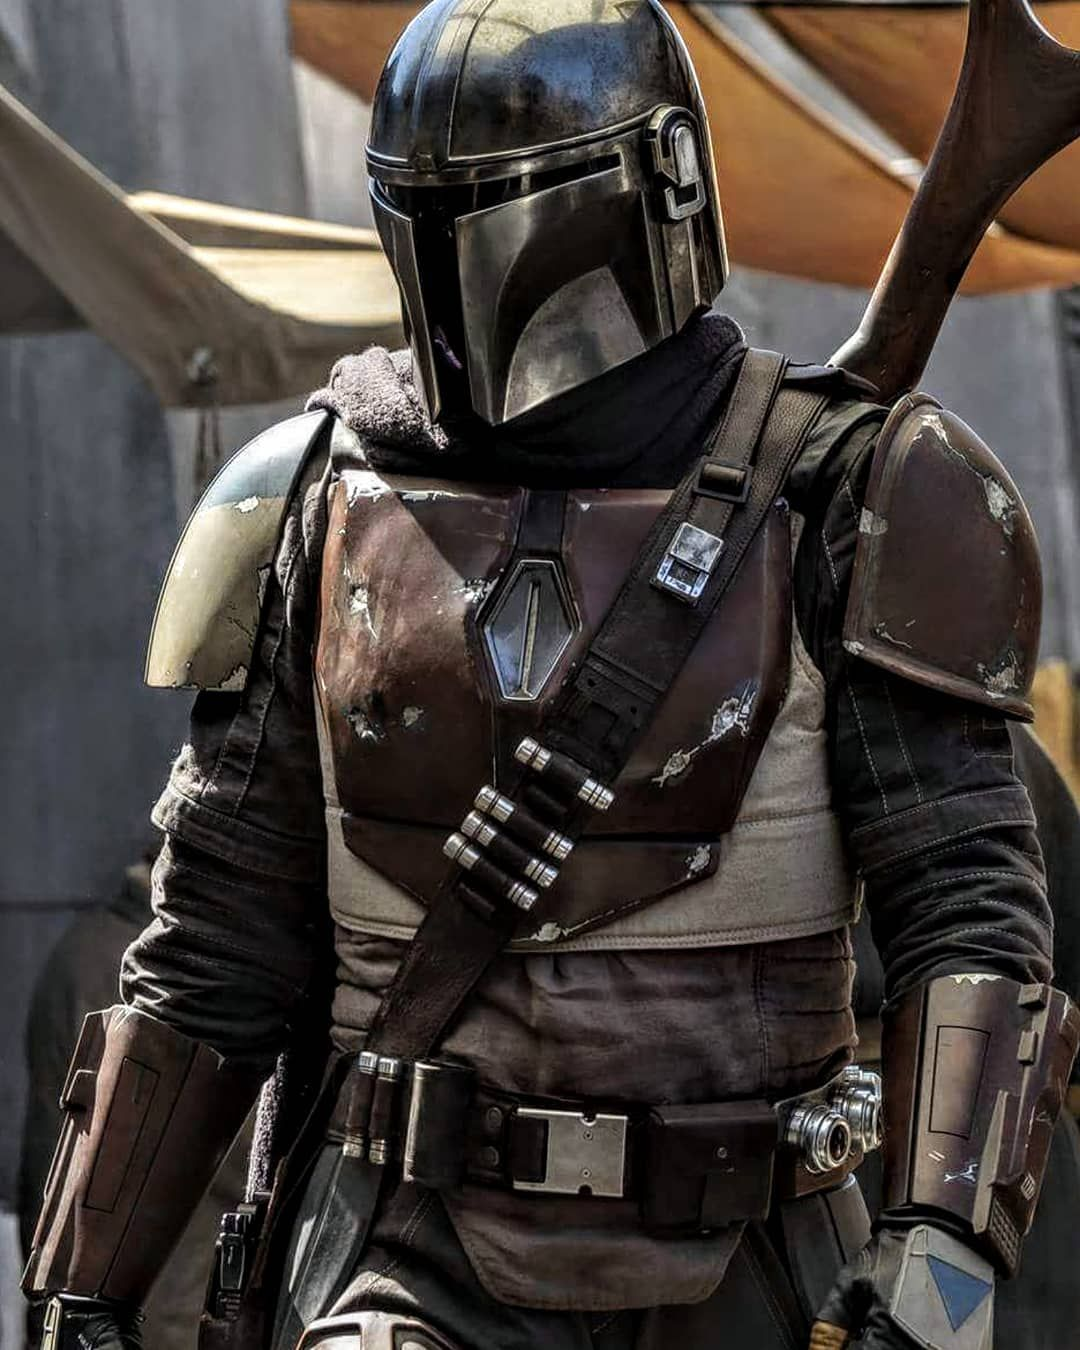 Our first look of the mandalorian from the star